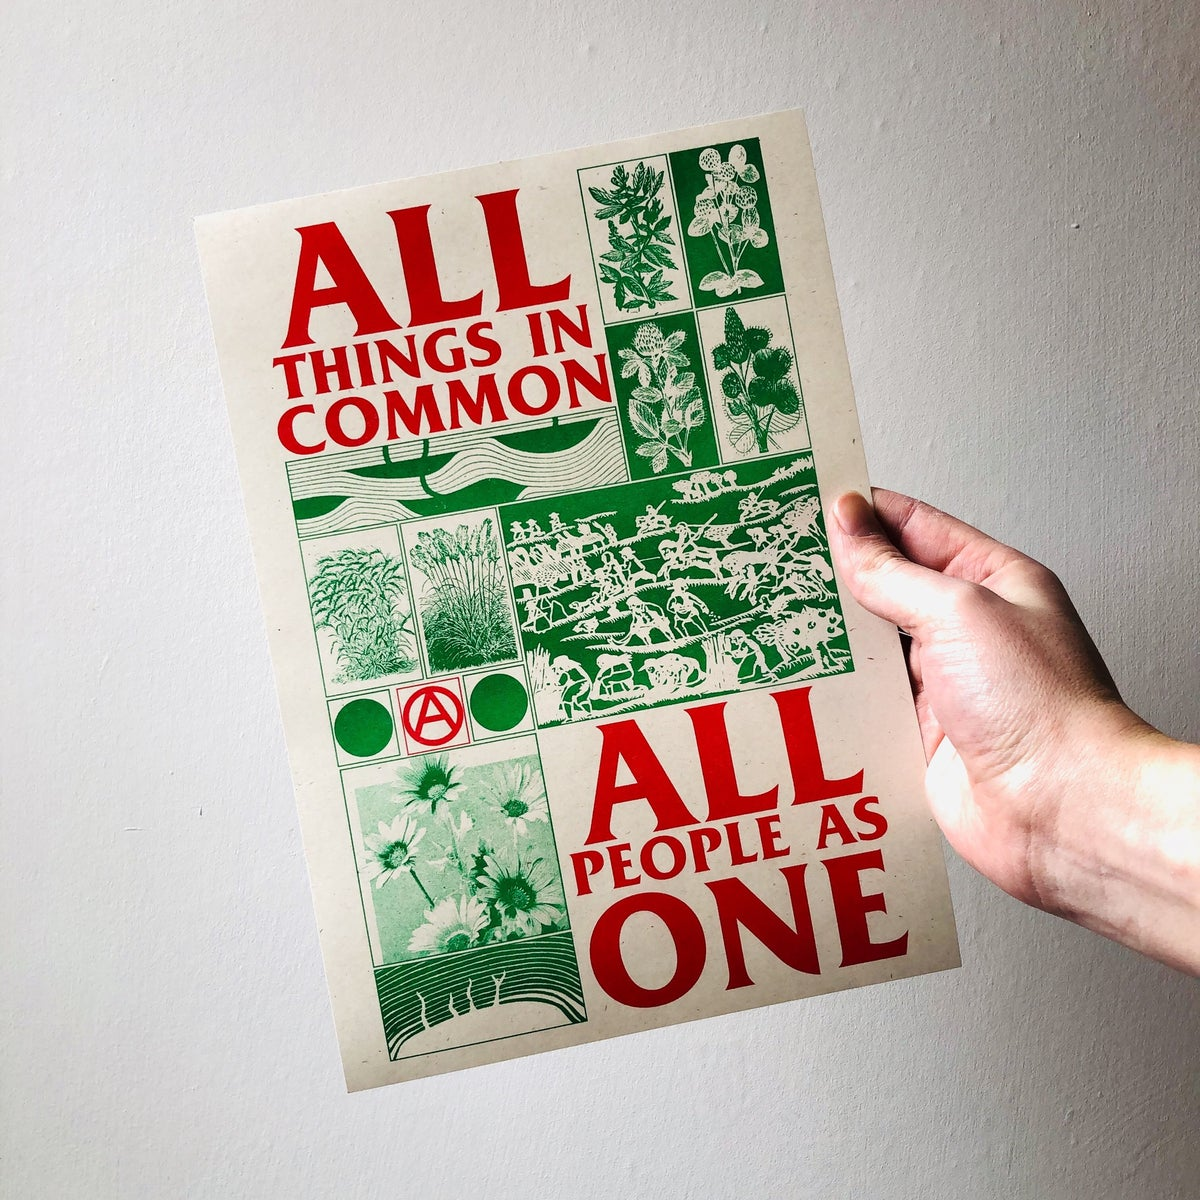 Image of All Things in Common, All People One A4 riso print